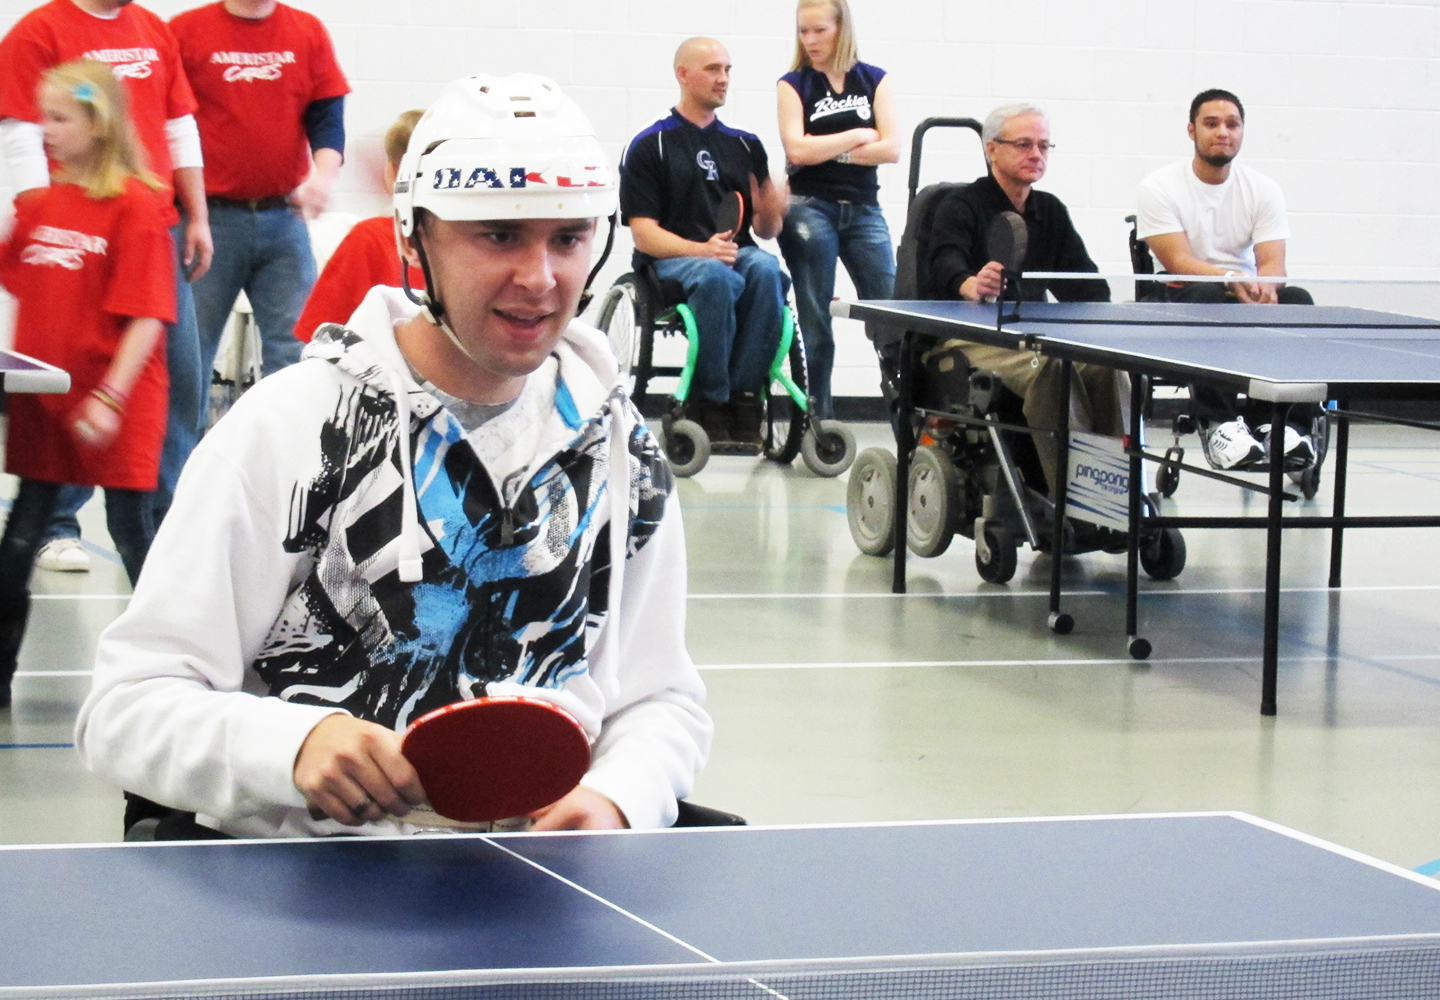 Spinal cord injury and brain injury patients playing ping pong with the therapeutic recreation program at Craig Hospital